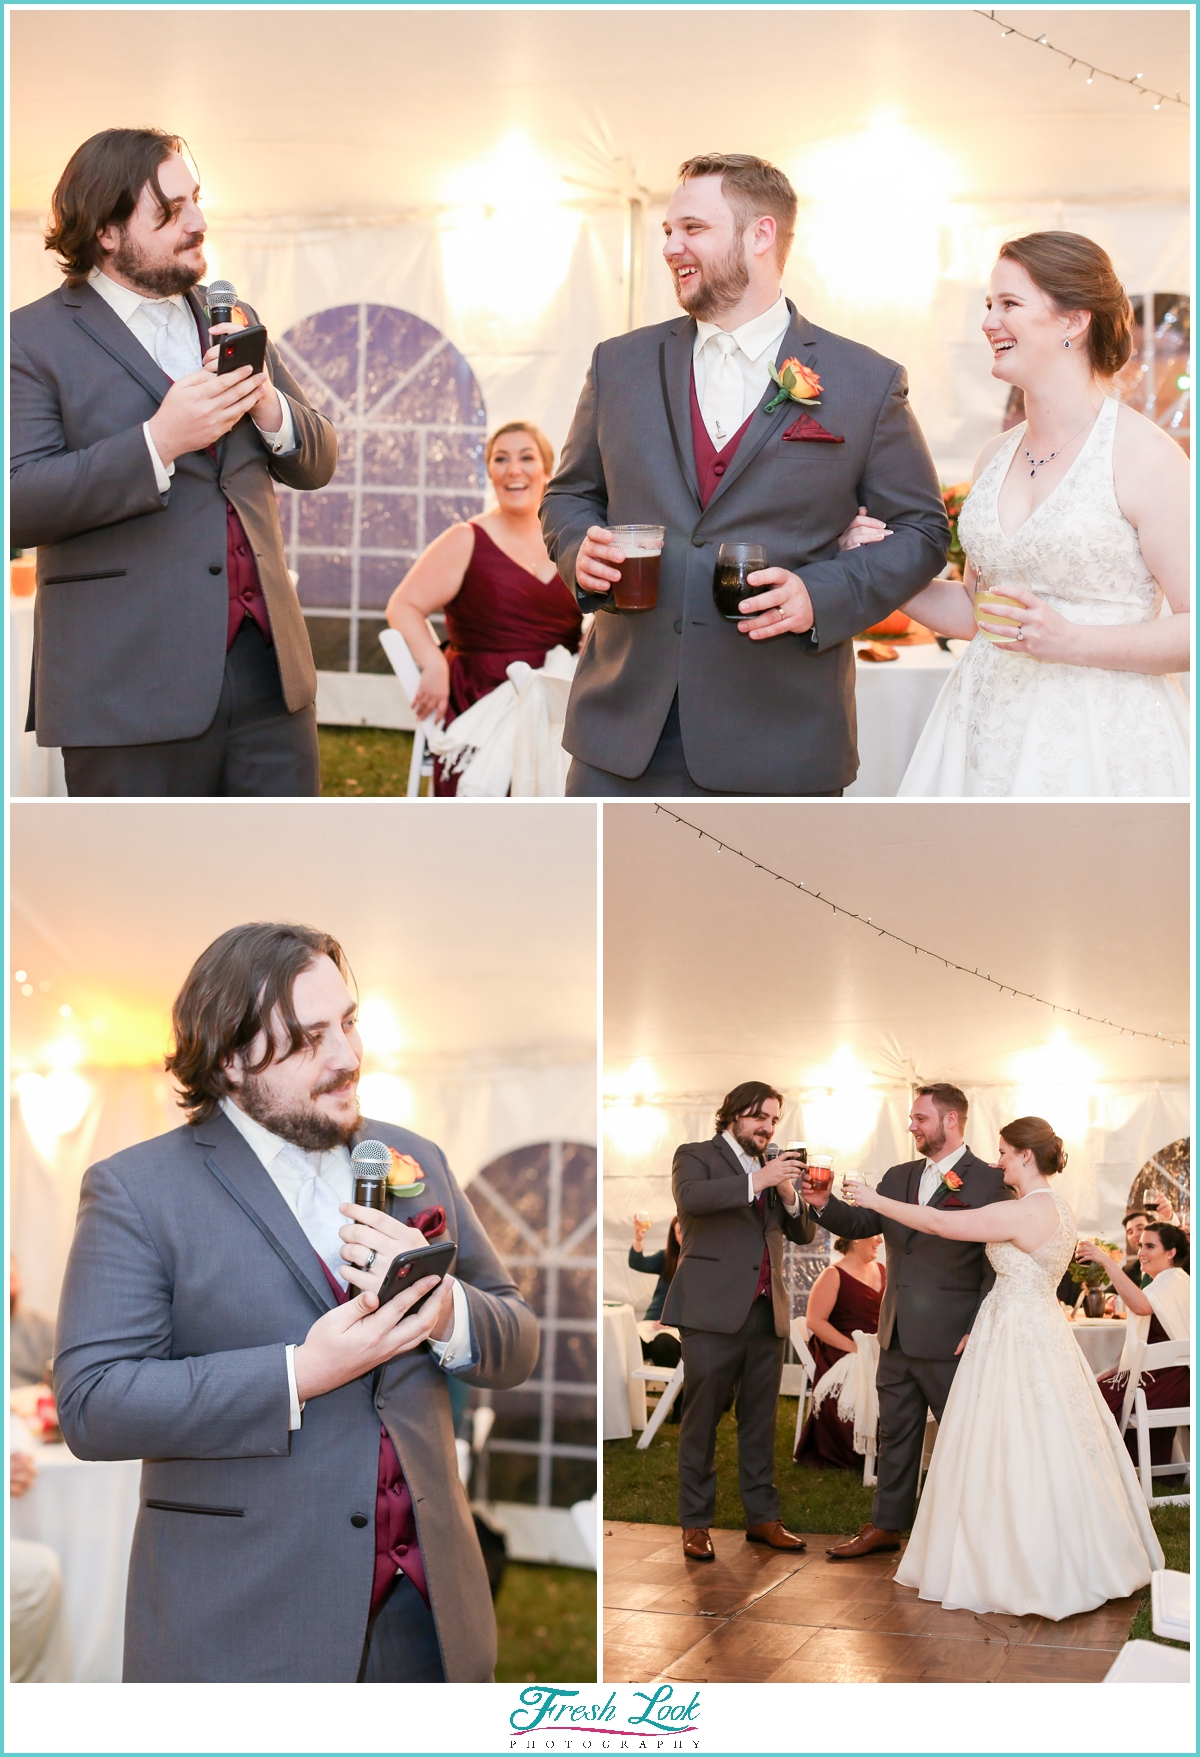 toasting the new bride and groom